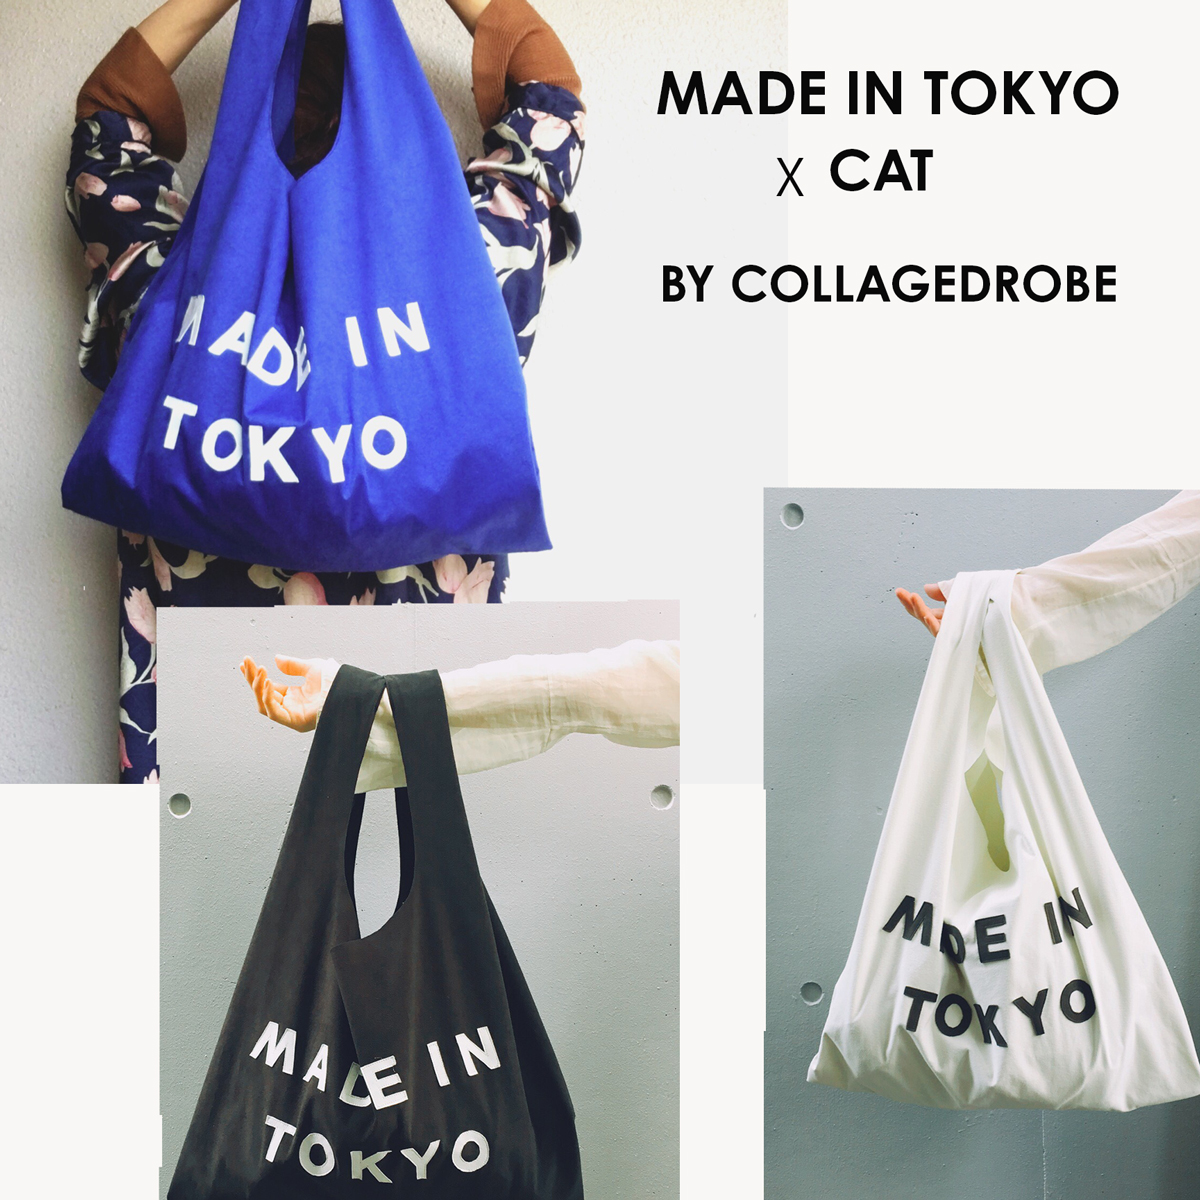 MADE IN TOKYO マルシェBAG画像